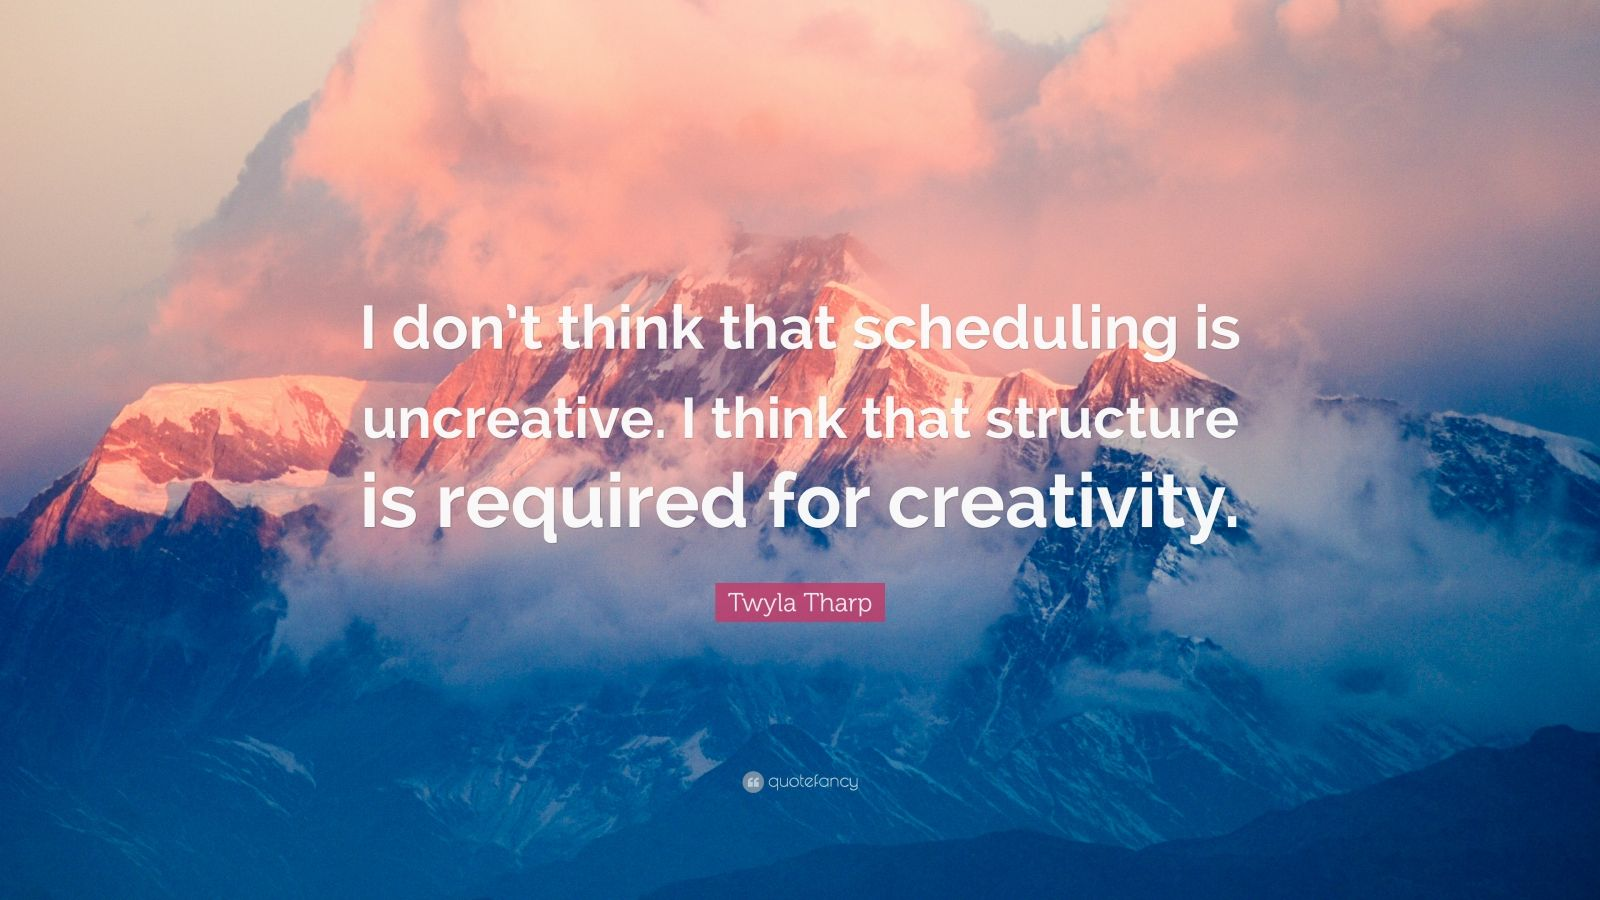 """Twyla Tharp Quote: """"I don't think that scheduling is uncreative. I think that structure is required for creativity."""""""